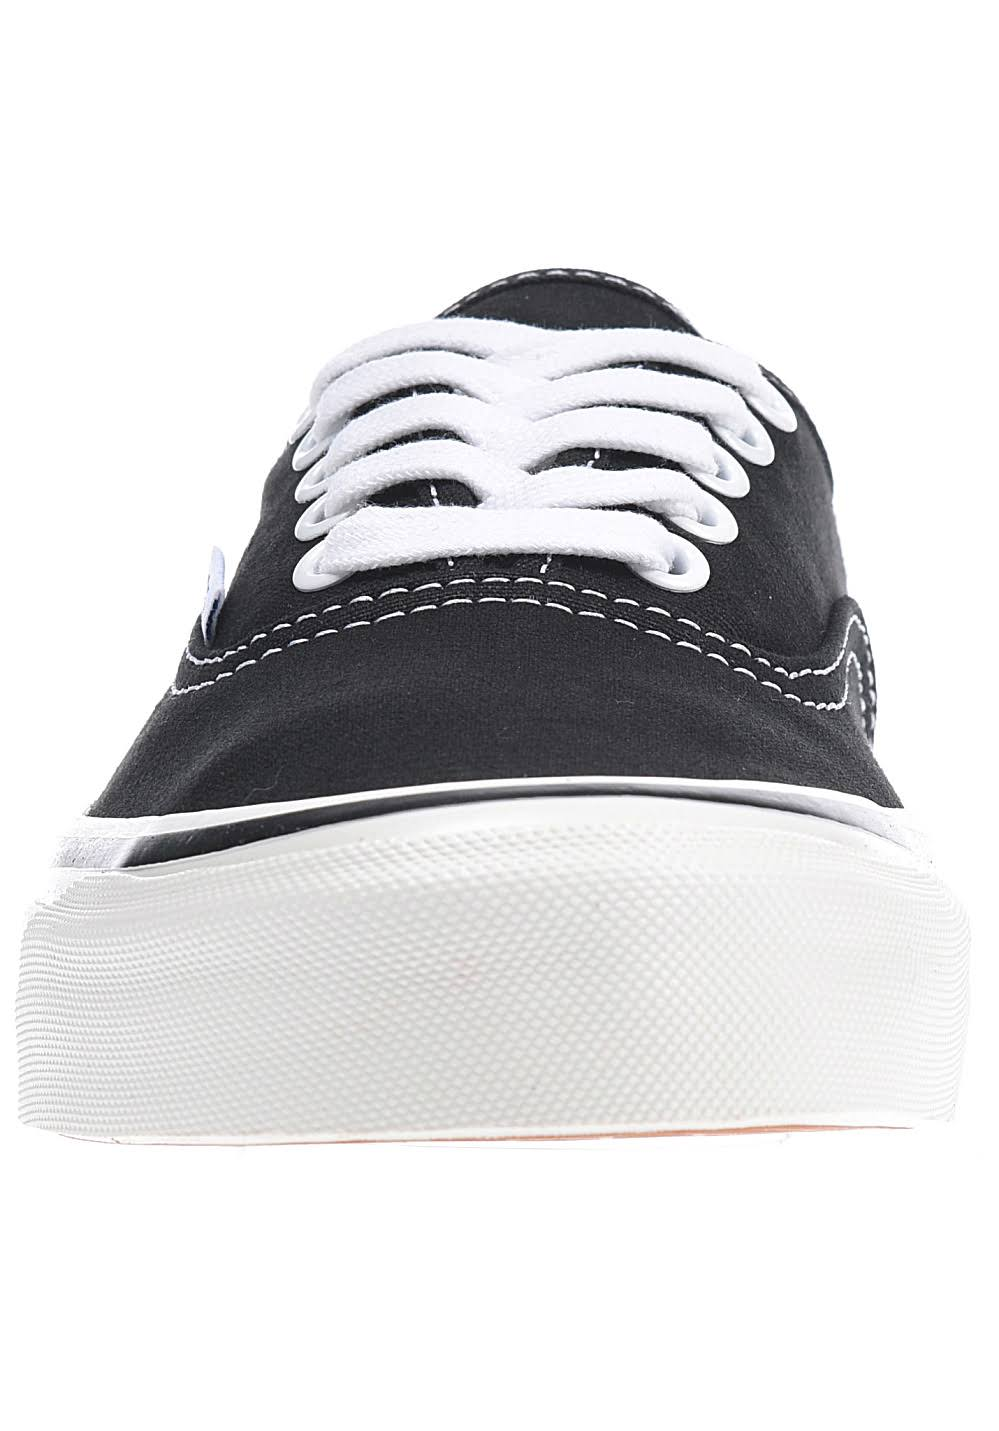 Maat 44 anaheim Sneakers 46 Zwart Vans Authentic Factory Black Dx qXAFFxS